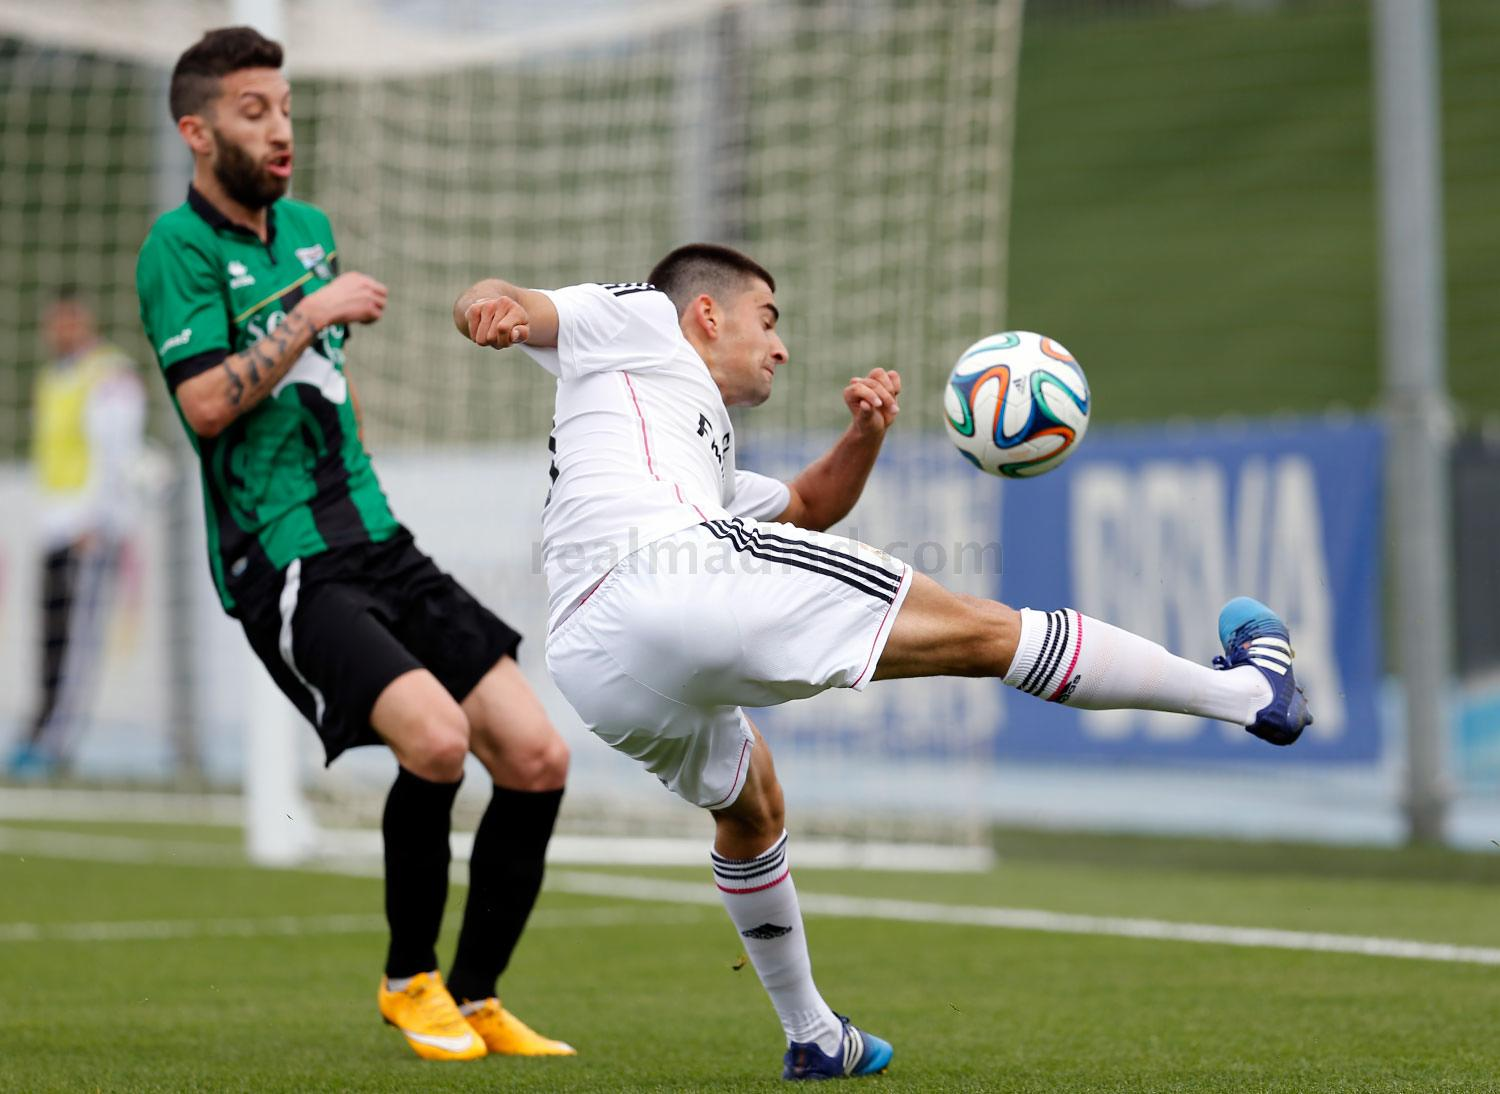 Real Madrid - Real Madrid Castilla - Sestao River - 25-04-2015